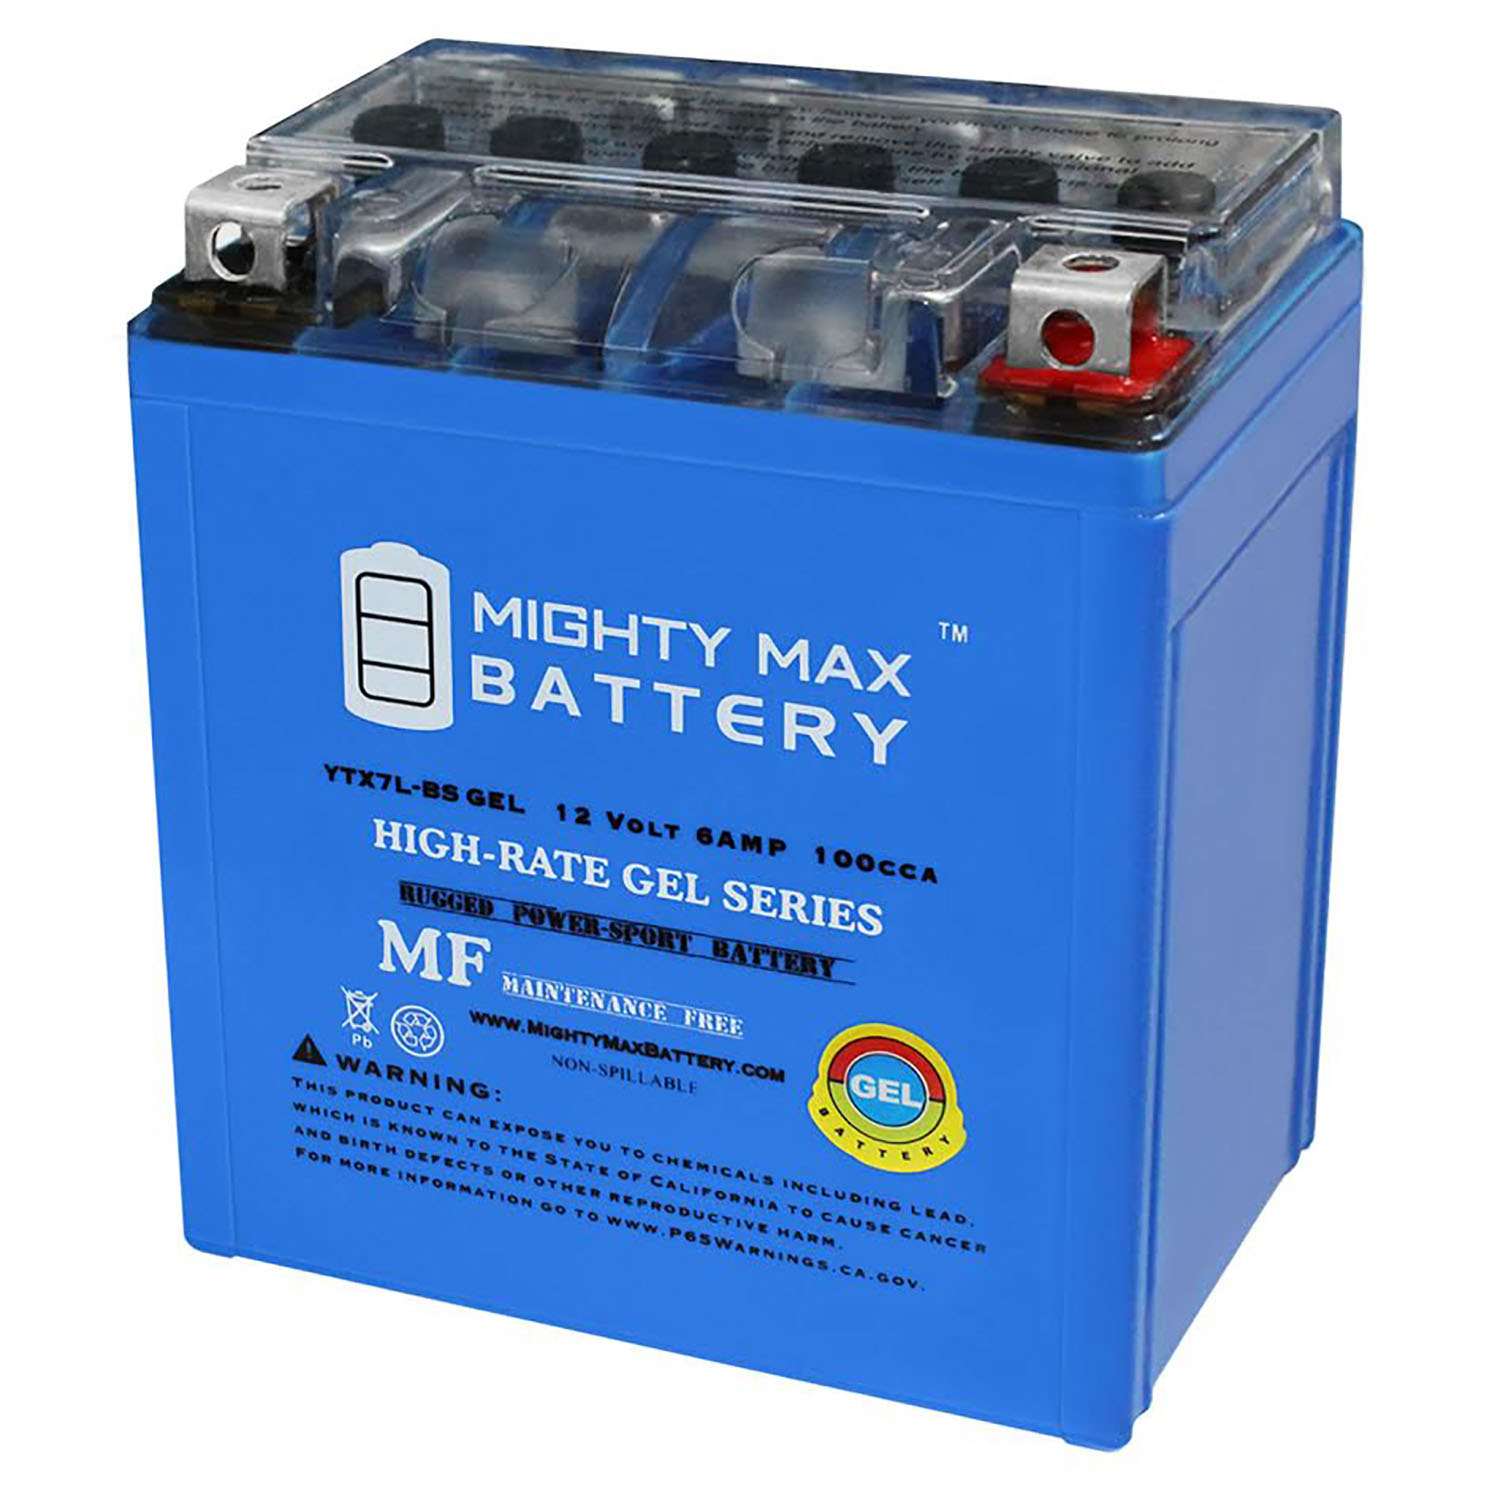 Mighty Max YTX7L-BS GEL Battery for Kawasaki 450 KFX450R 08-13 12V 1AMP CHARGE